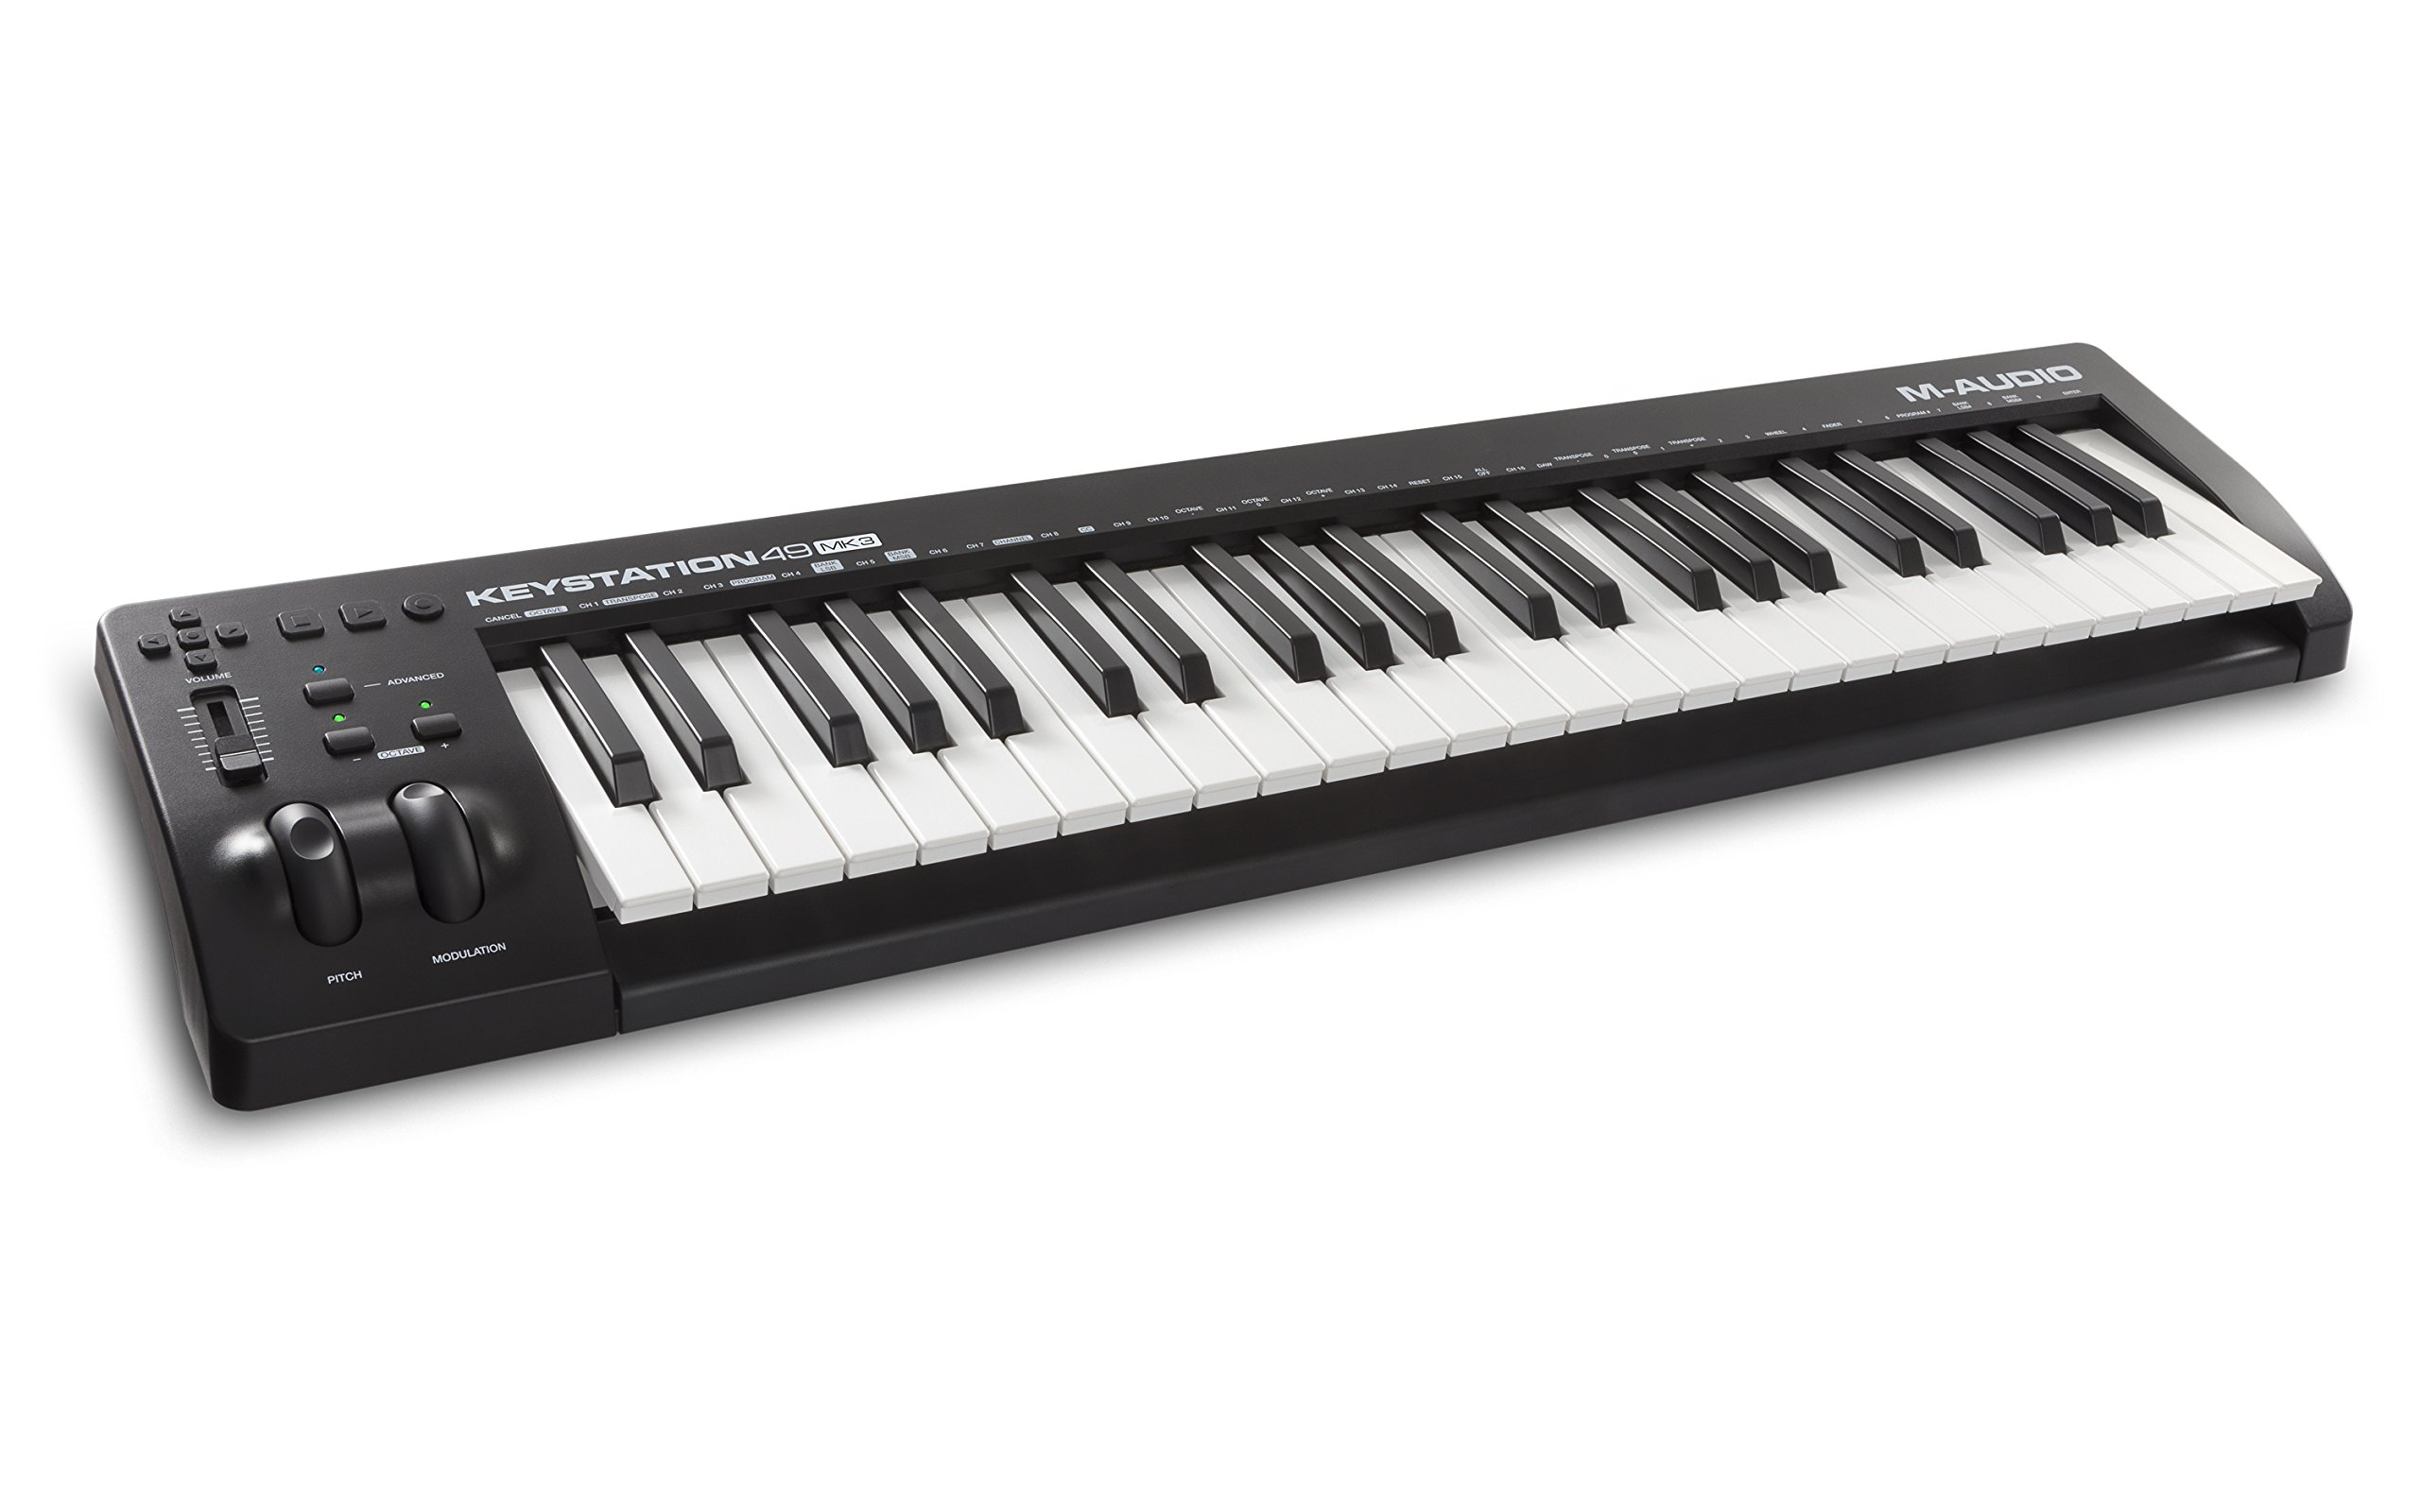 M-Audio Keystation 49 MK3 MIDI Controller